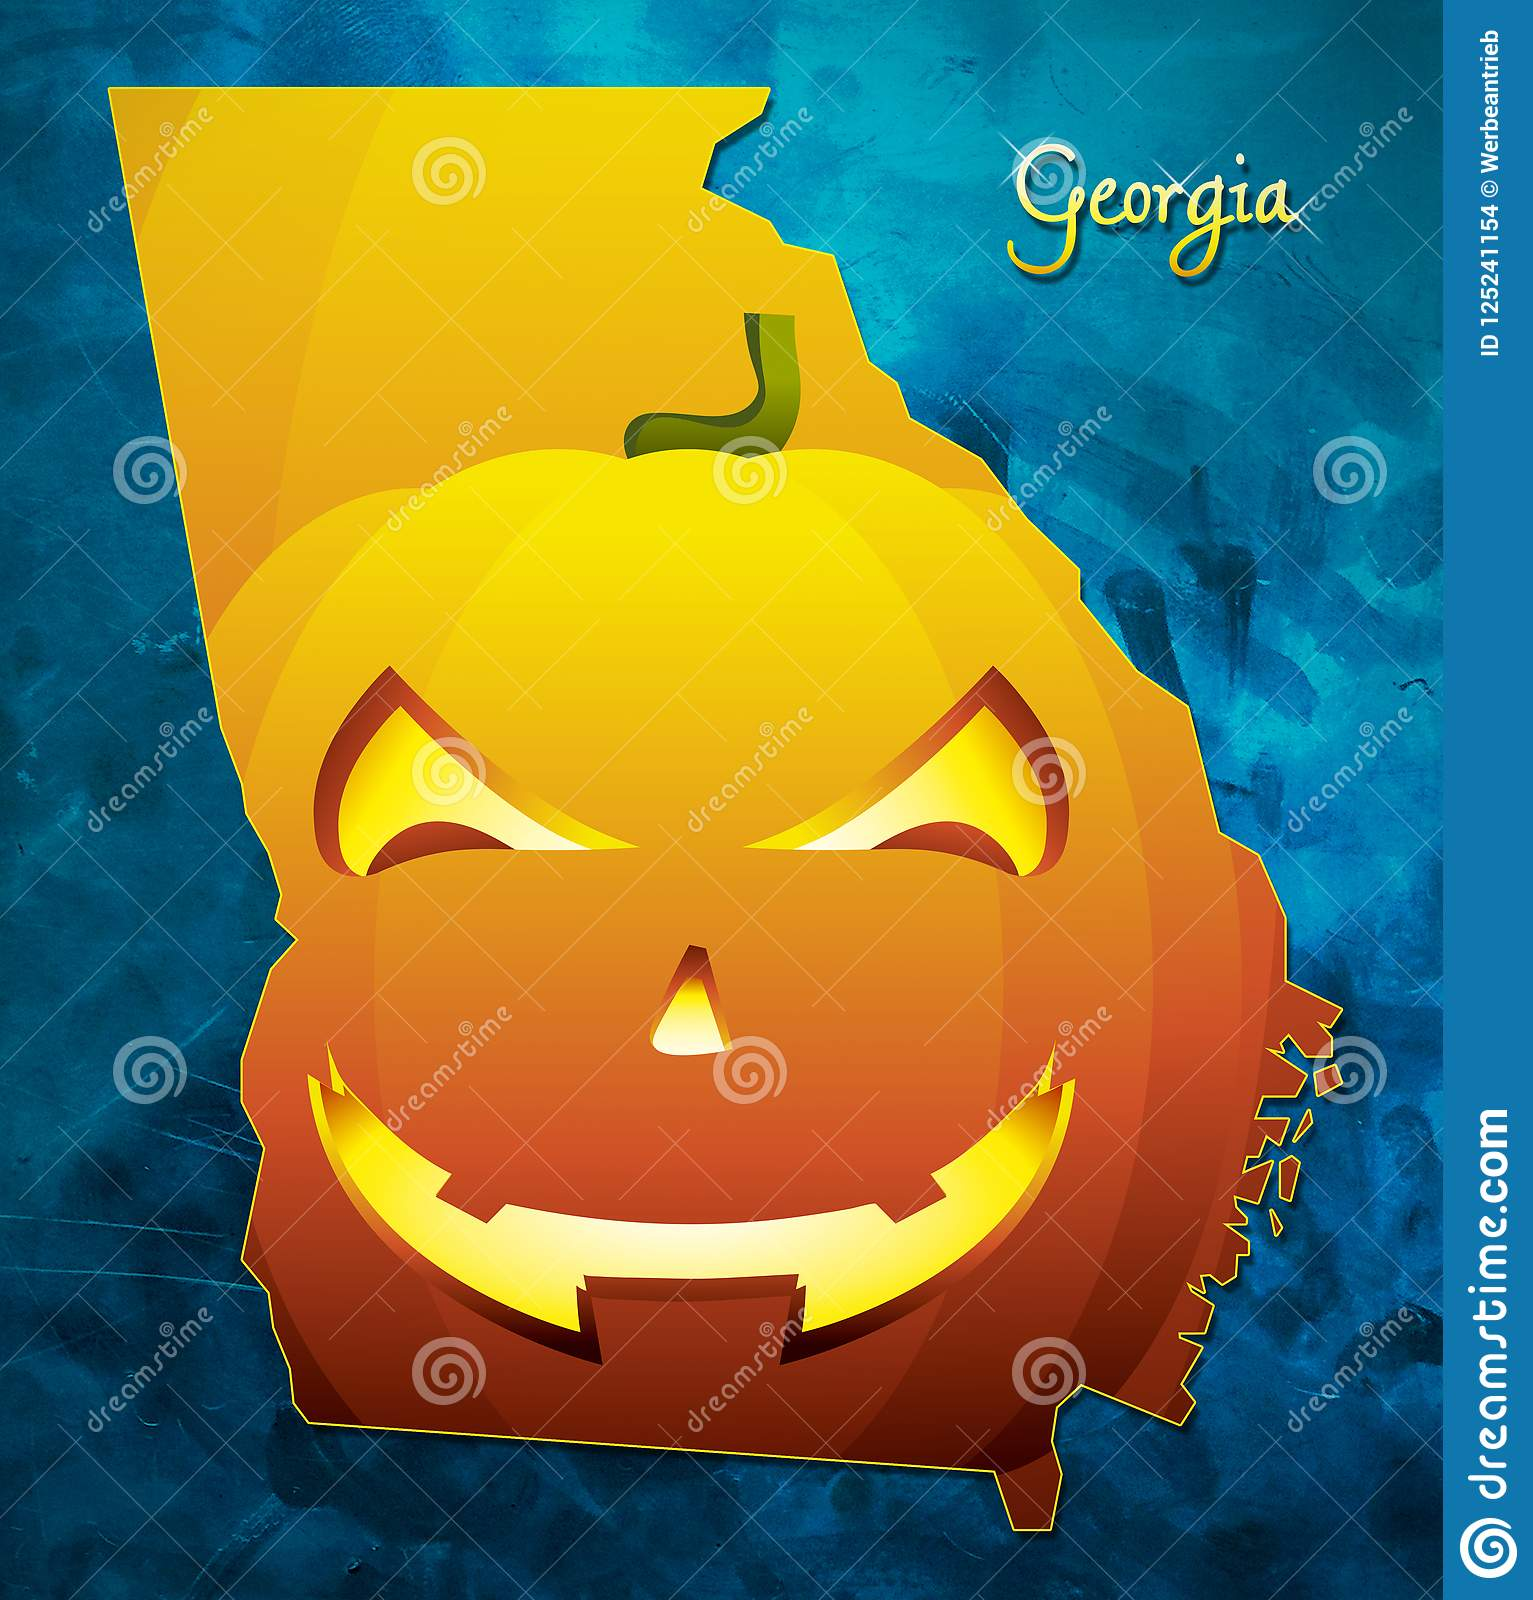 Georgia State Map Usa With Halloween Pumpkin Face Illustration Stock